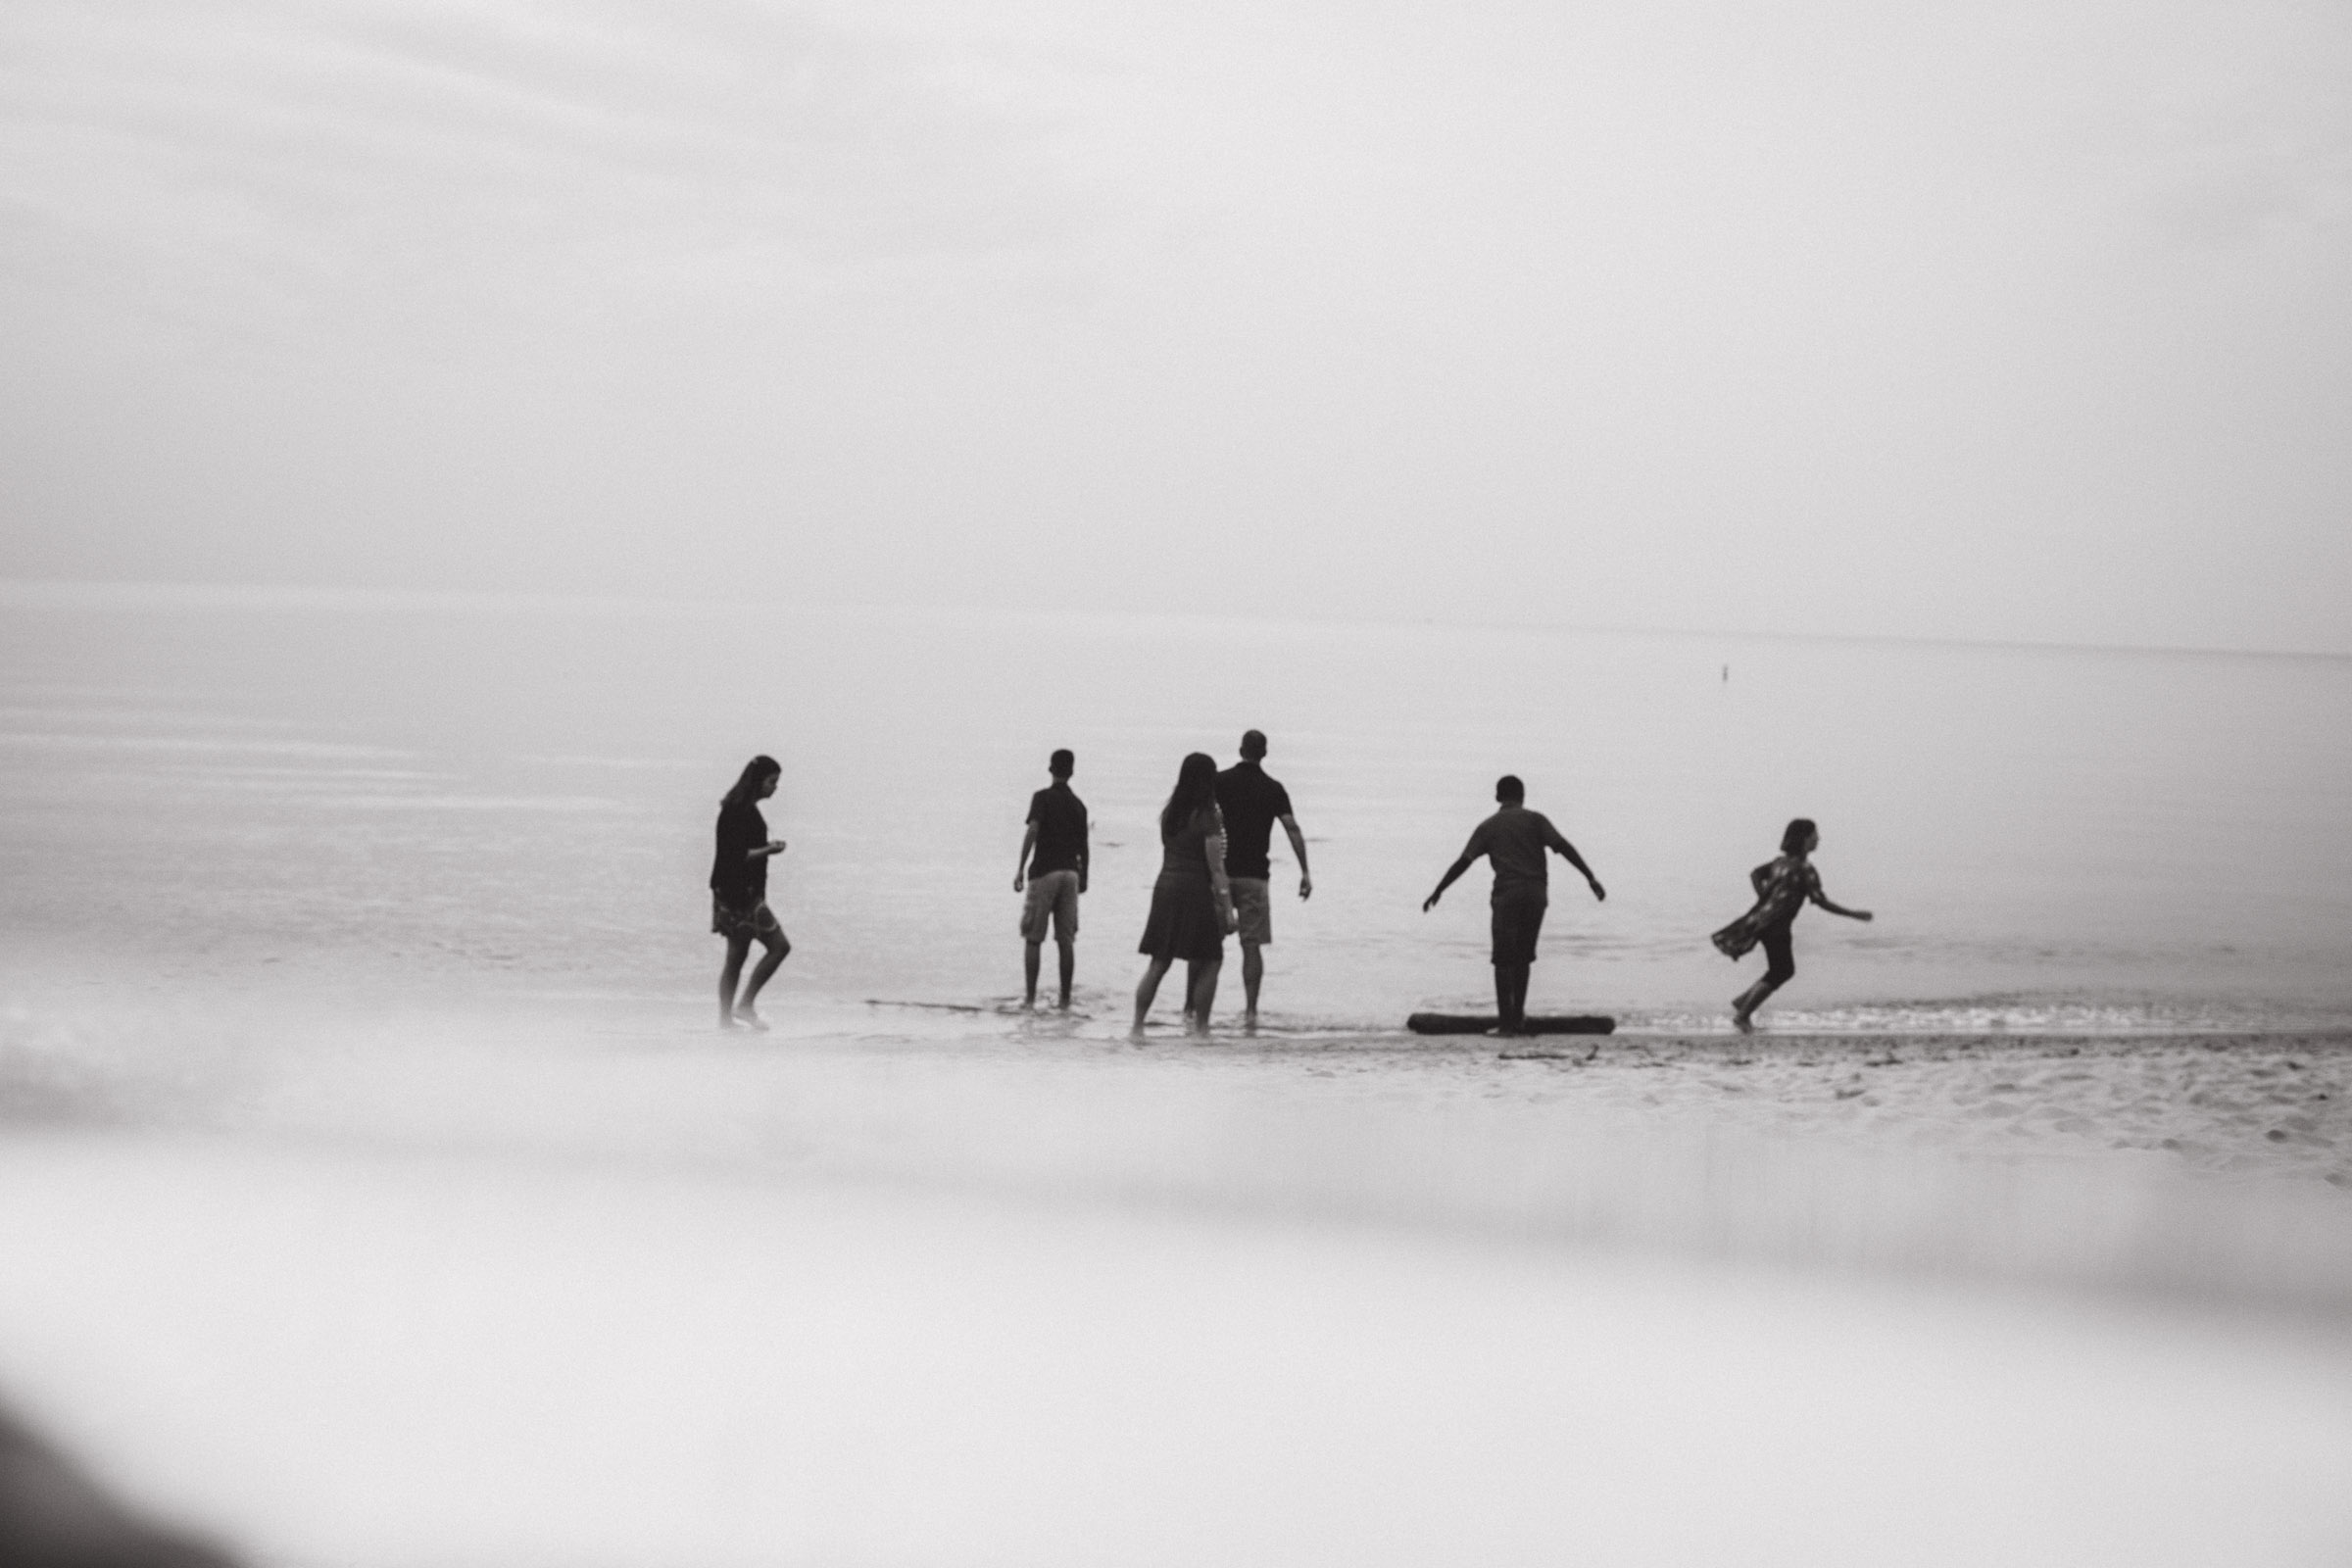 family connecting and playing by the water, black and white